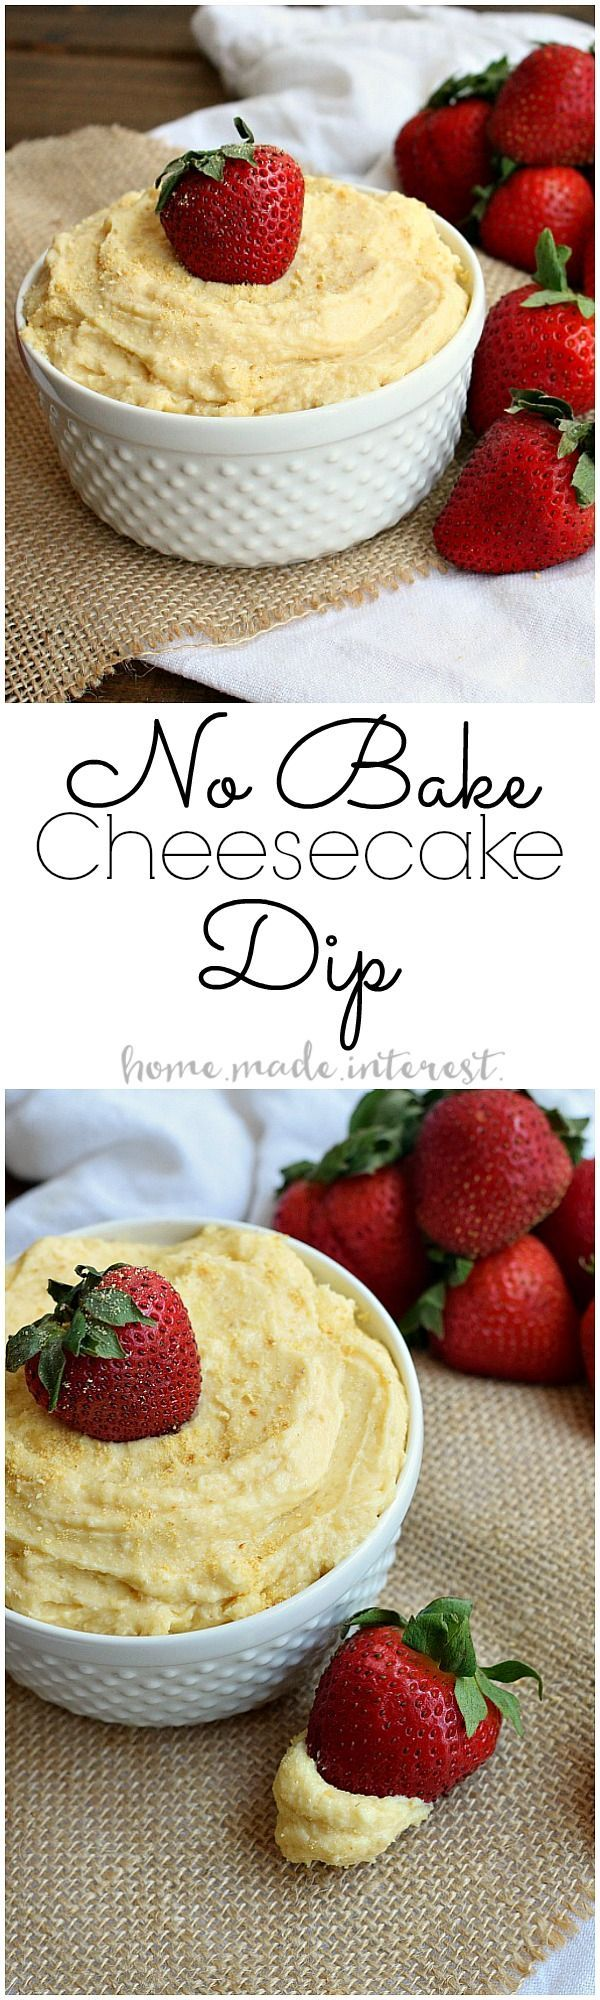 This easy dessert recipe requires no baking! No bake cheesecake dip is a simple party dip, or just a sweet snack for the family.